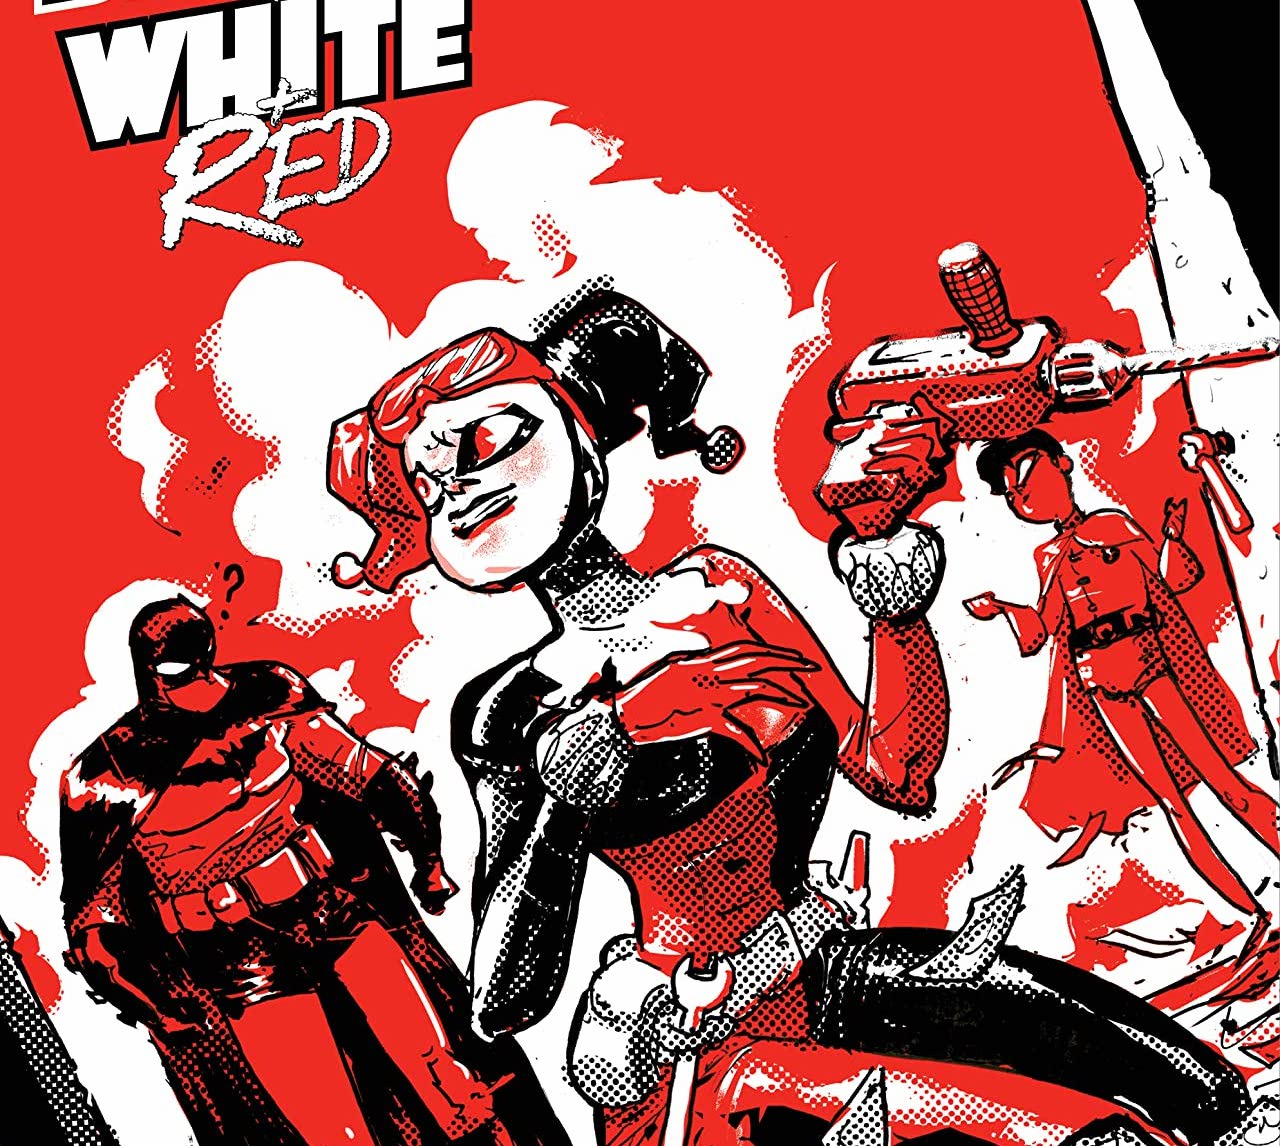 'Harley Quinn Black + White + Red' #5 is a vibrant and creative issue.